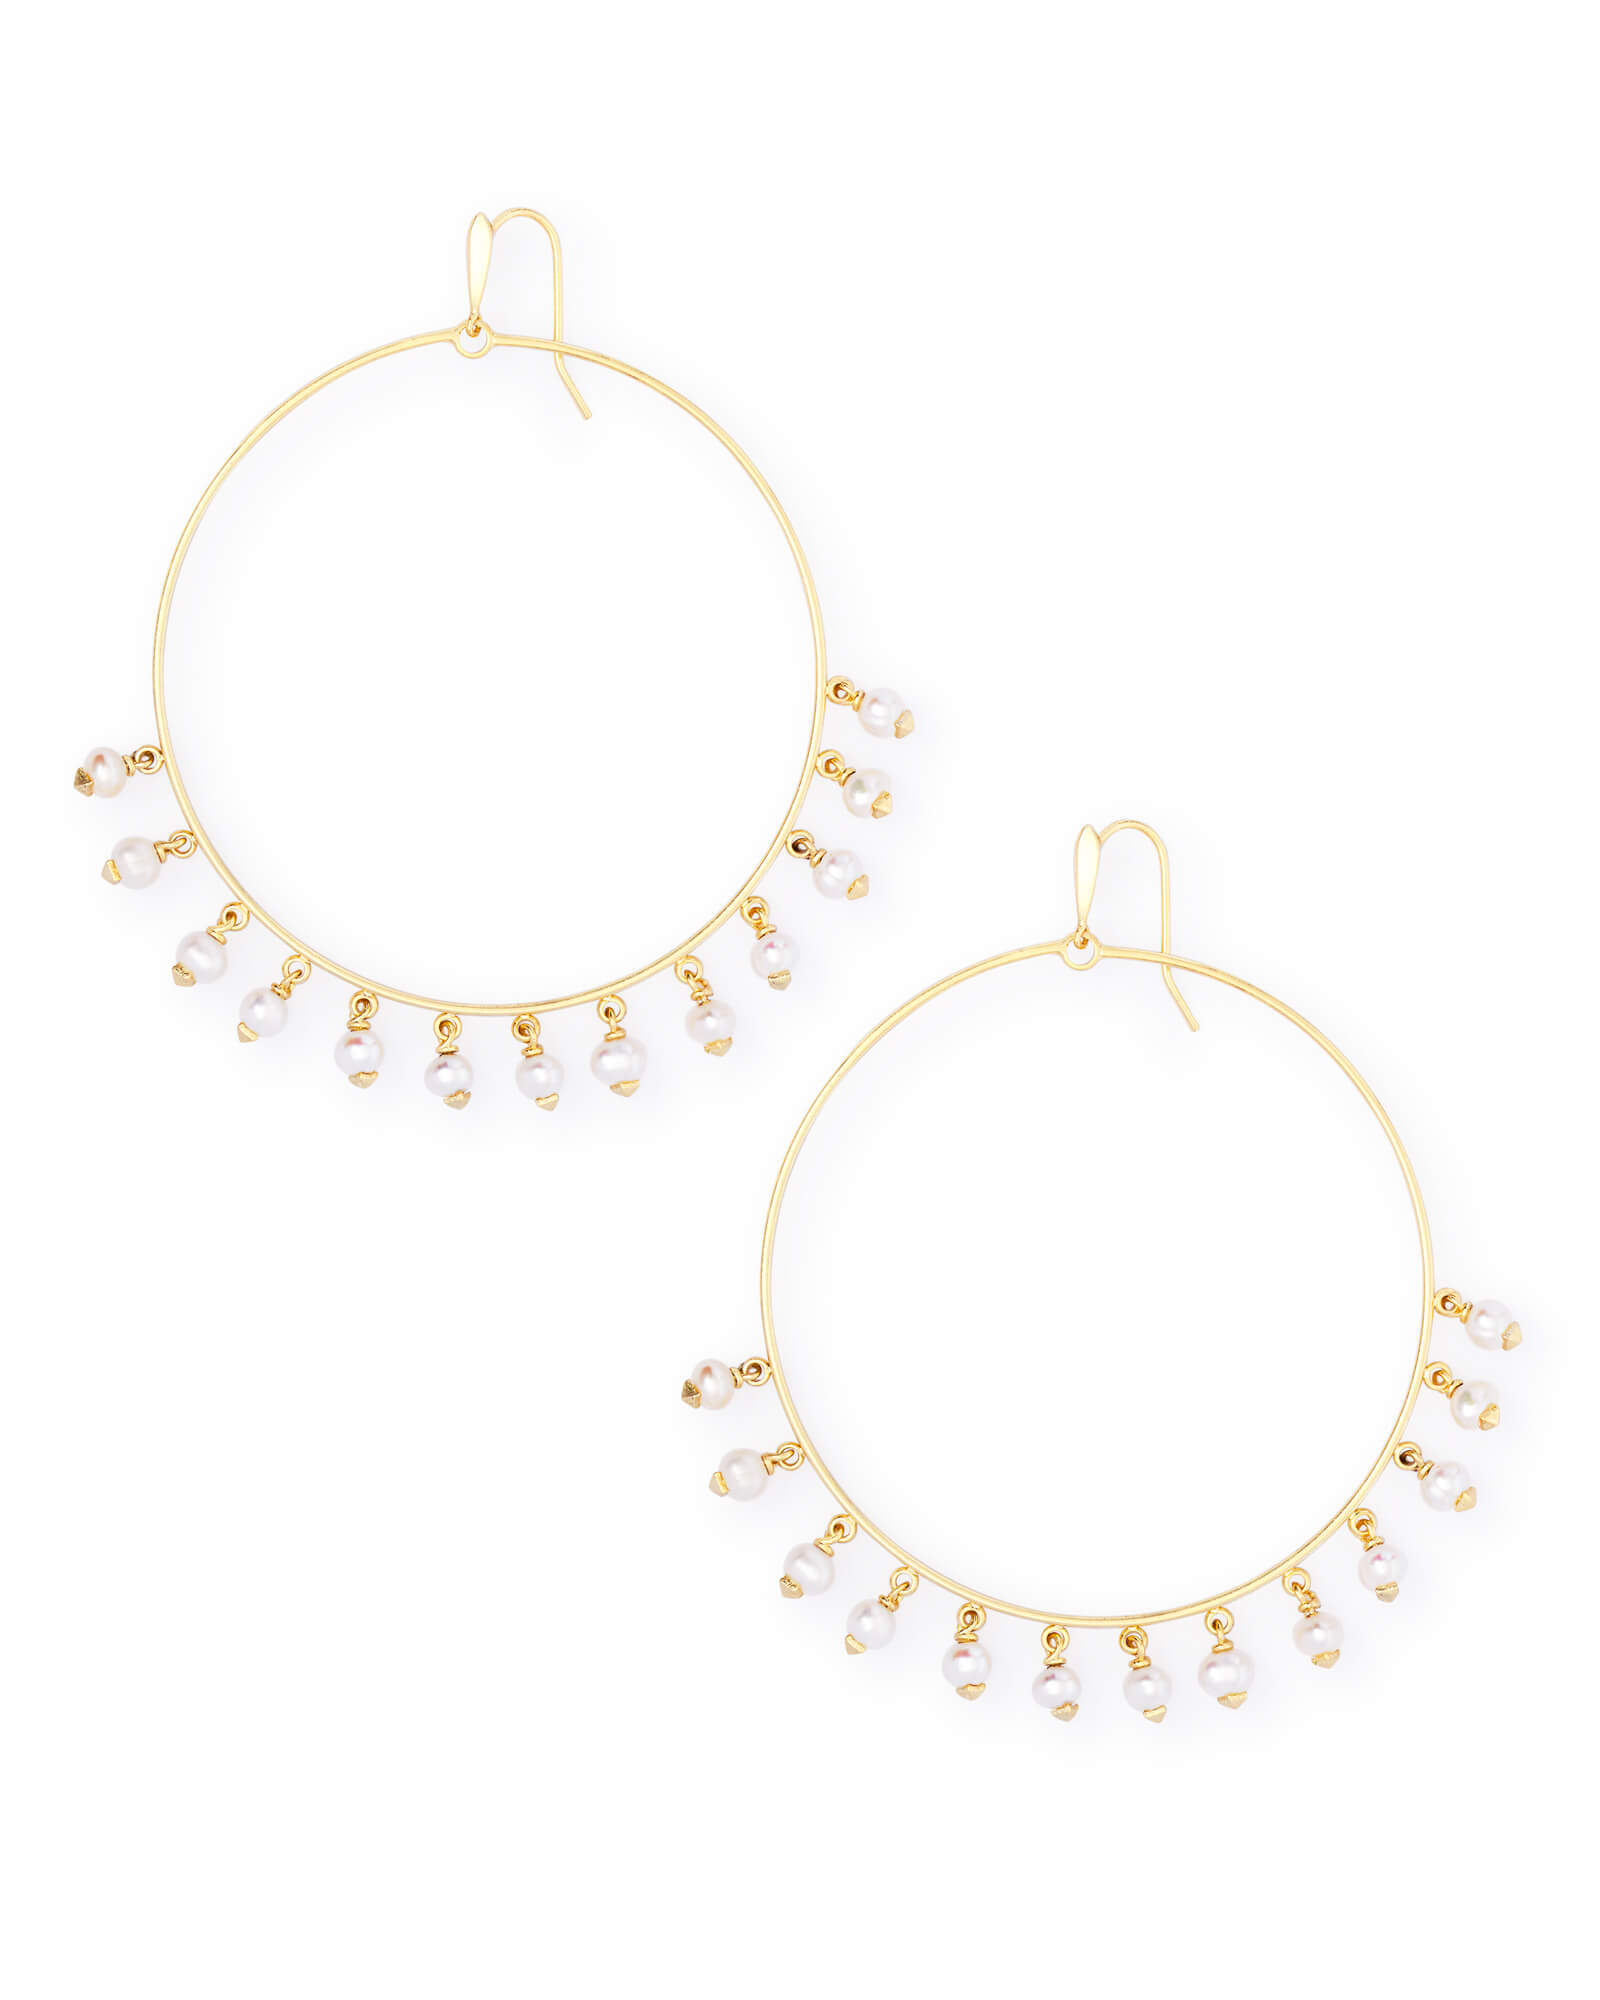 Hilty Gold Hoop Earrings in Pearl